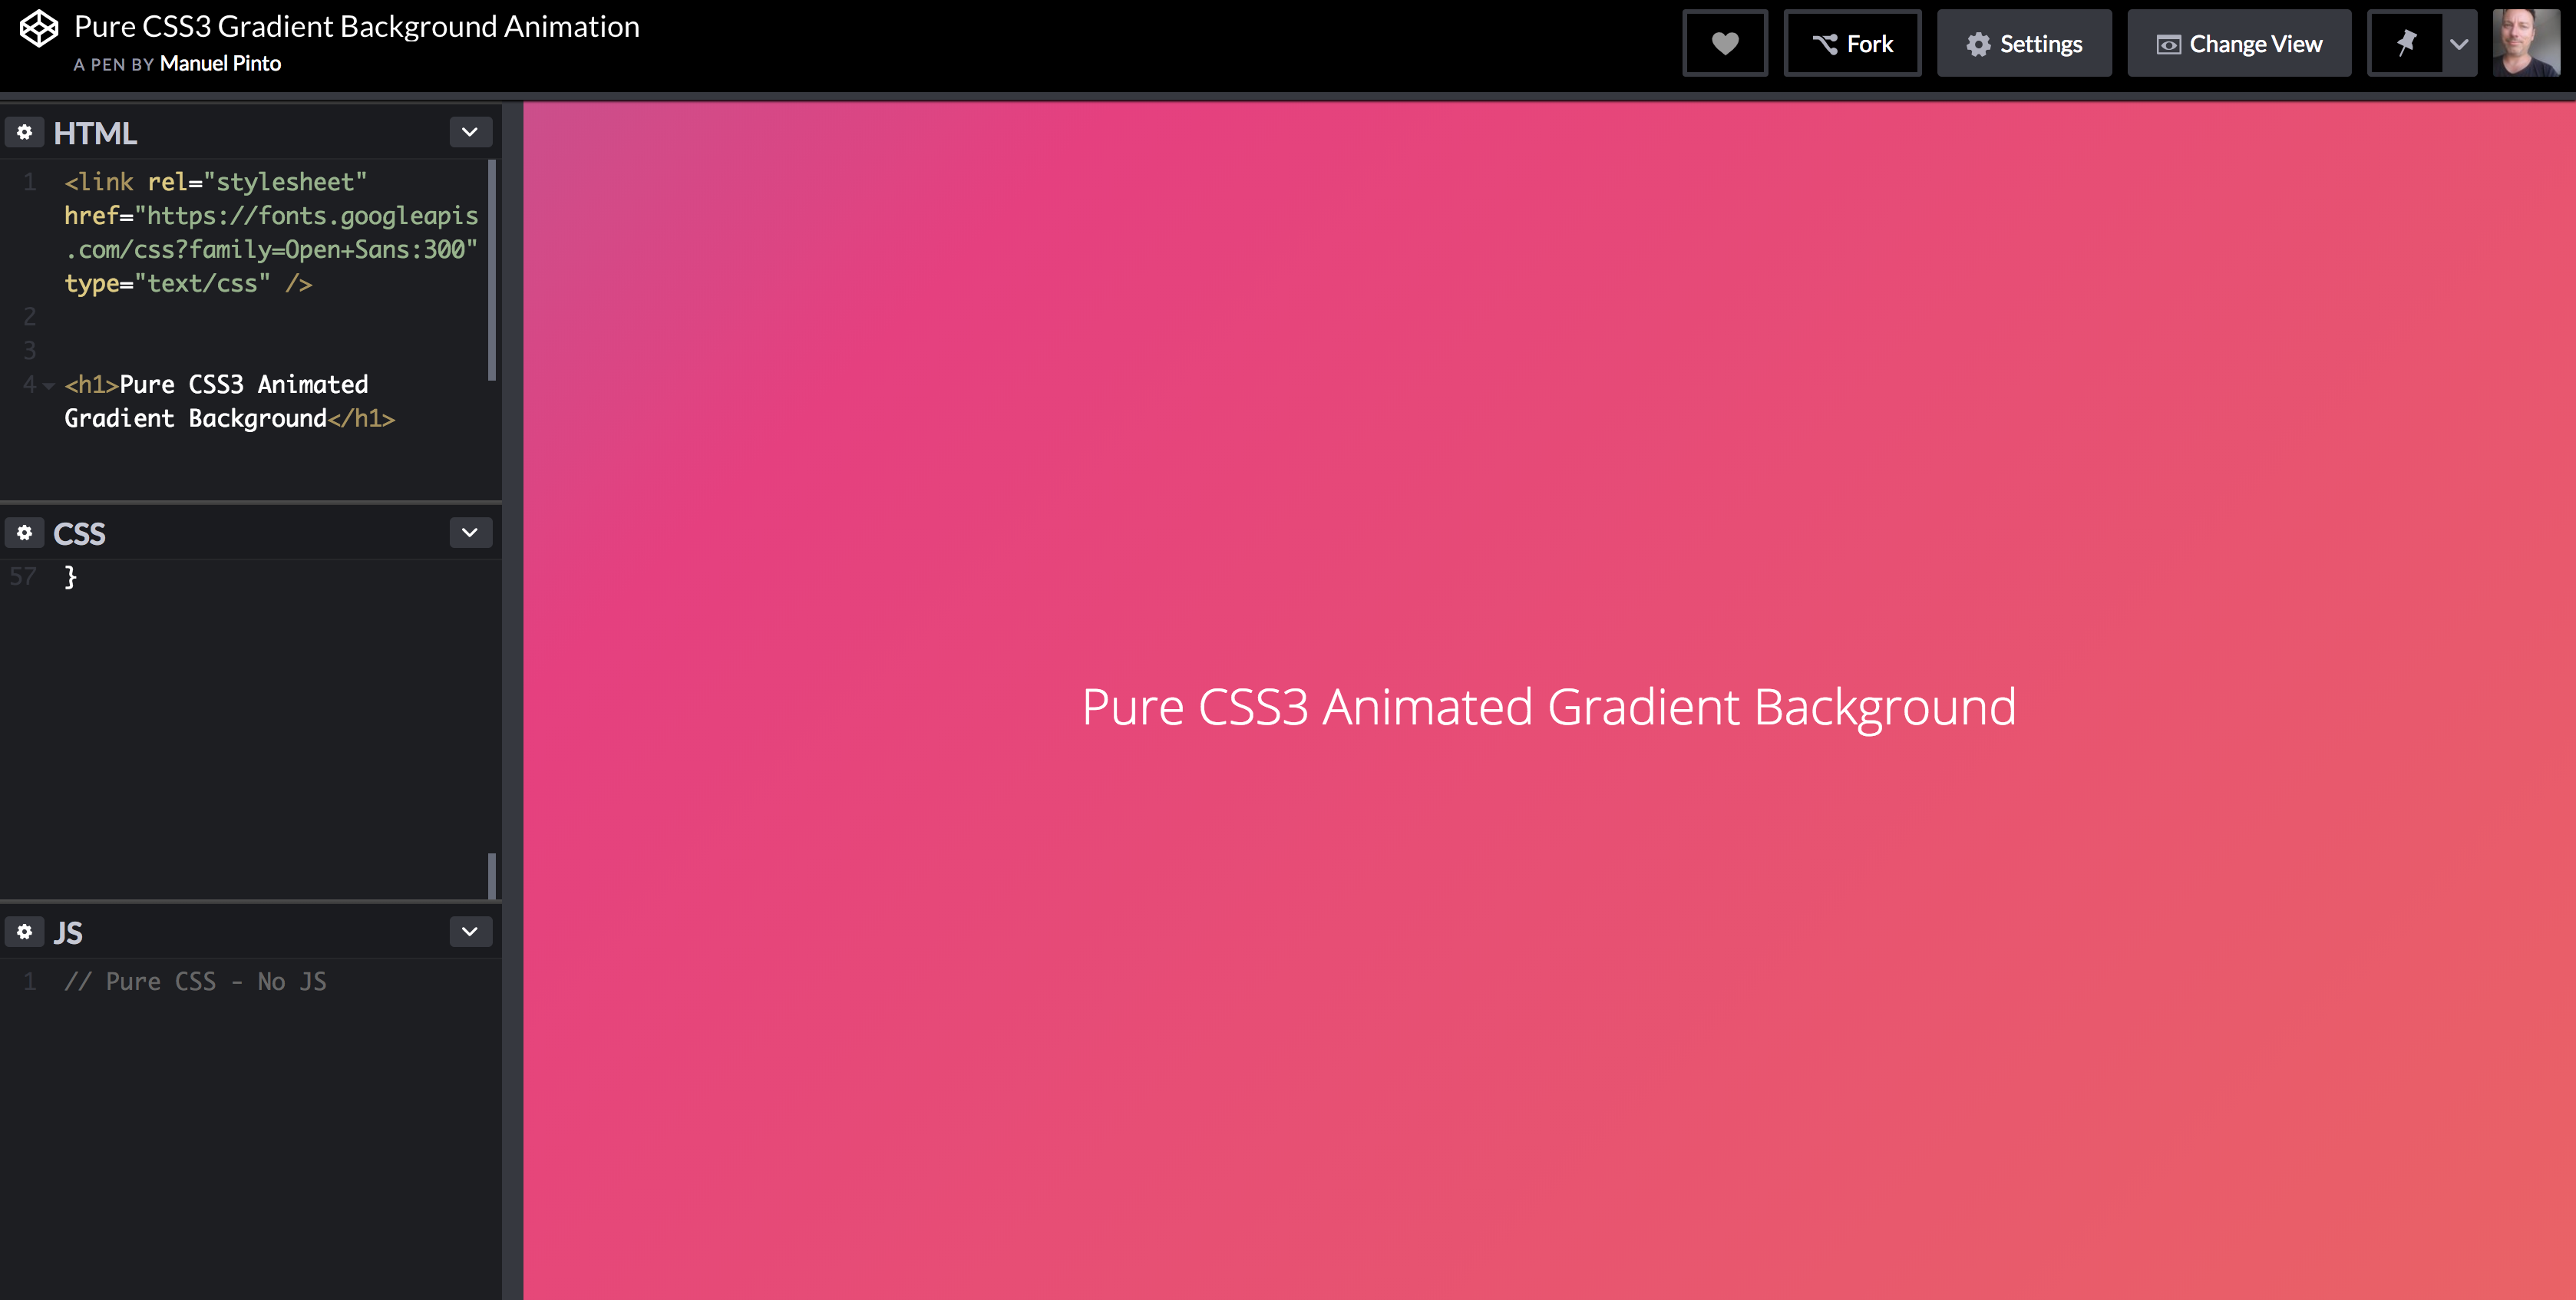 Could use this pure CSS gradient background animation